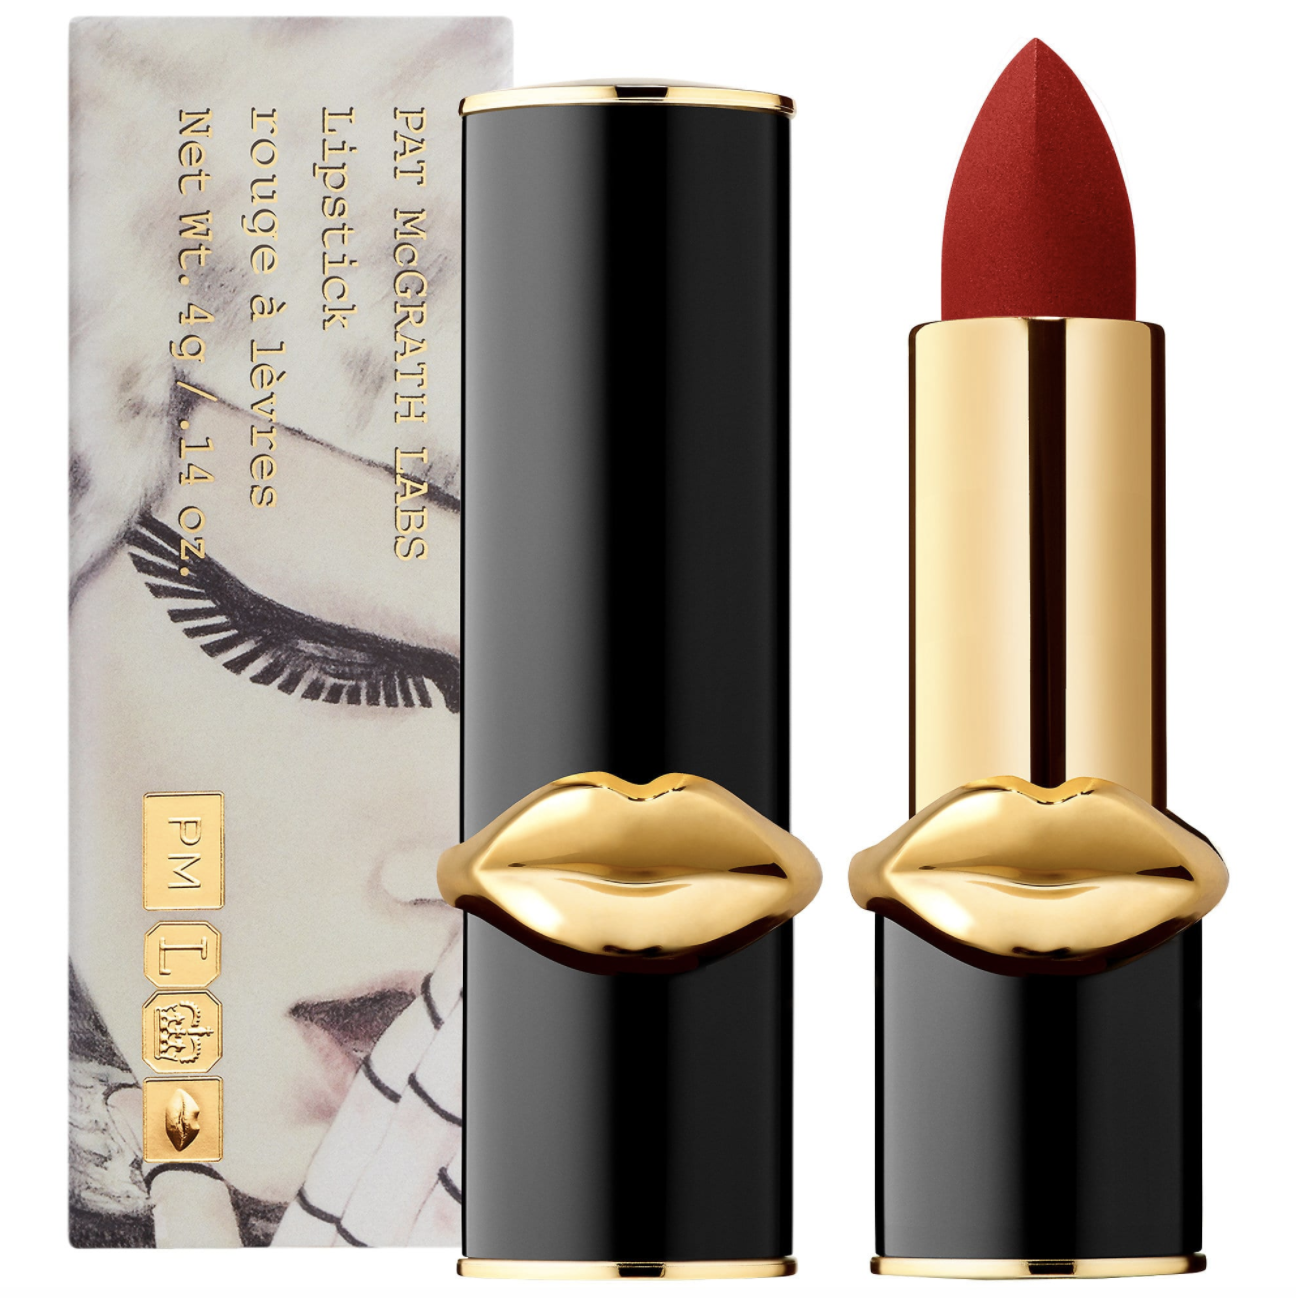 MatteTrance™ Lipstick in Elson PAT McGRATH LABS sephora.com $38.00 SHOP NOW Named after model and McGrath muse Karen Elson, this luxe red is peak elegance. Wear it and instantly feel classier.